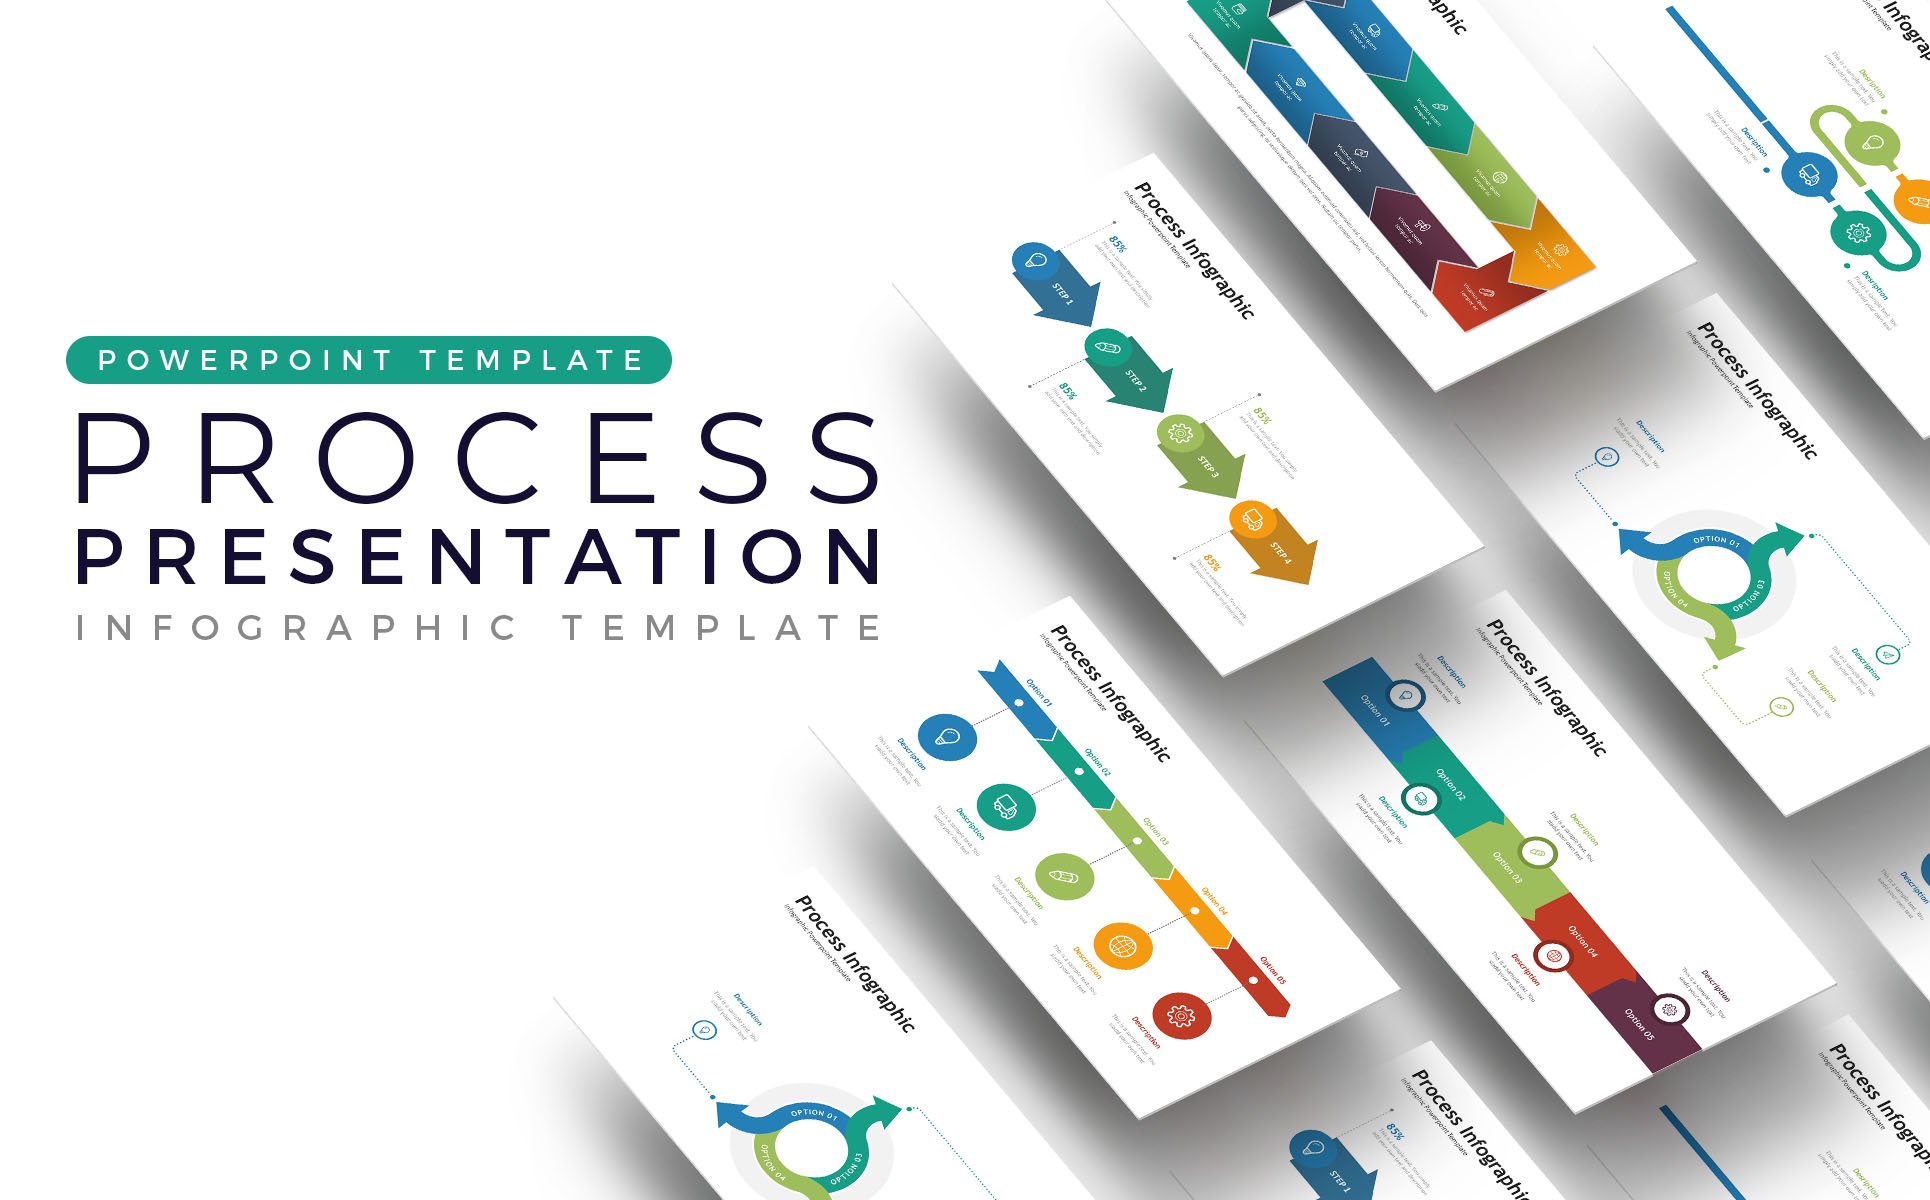 Process Presentation - Infographic PowerPoint Template